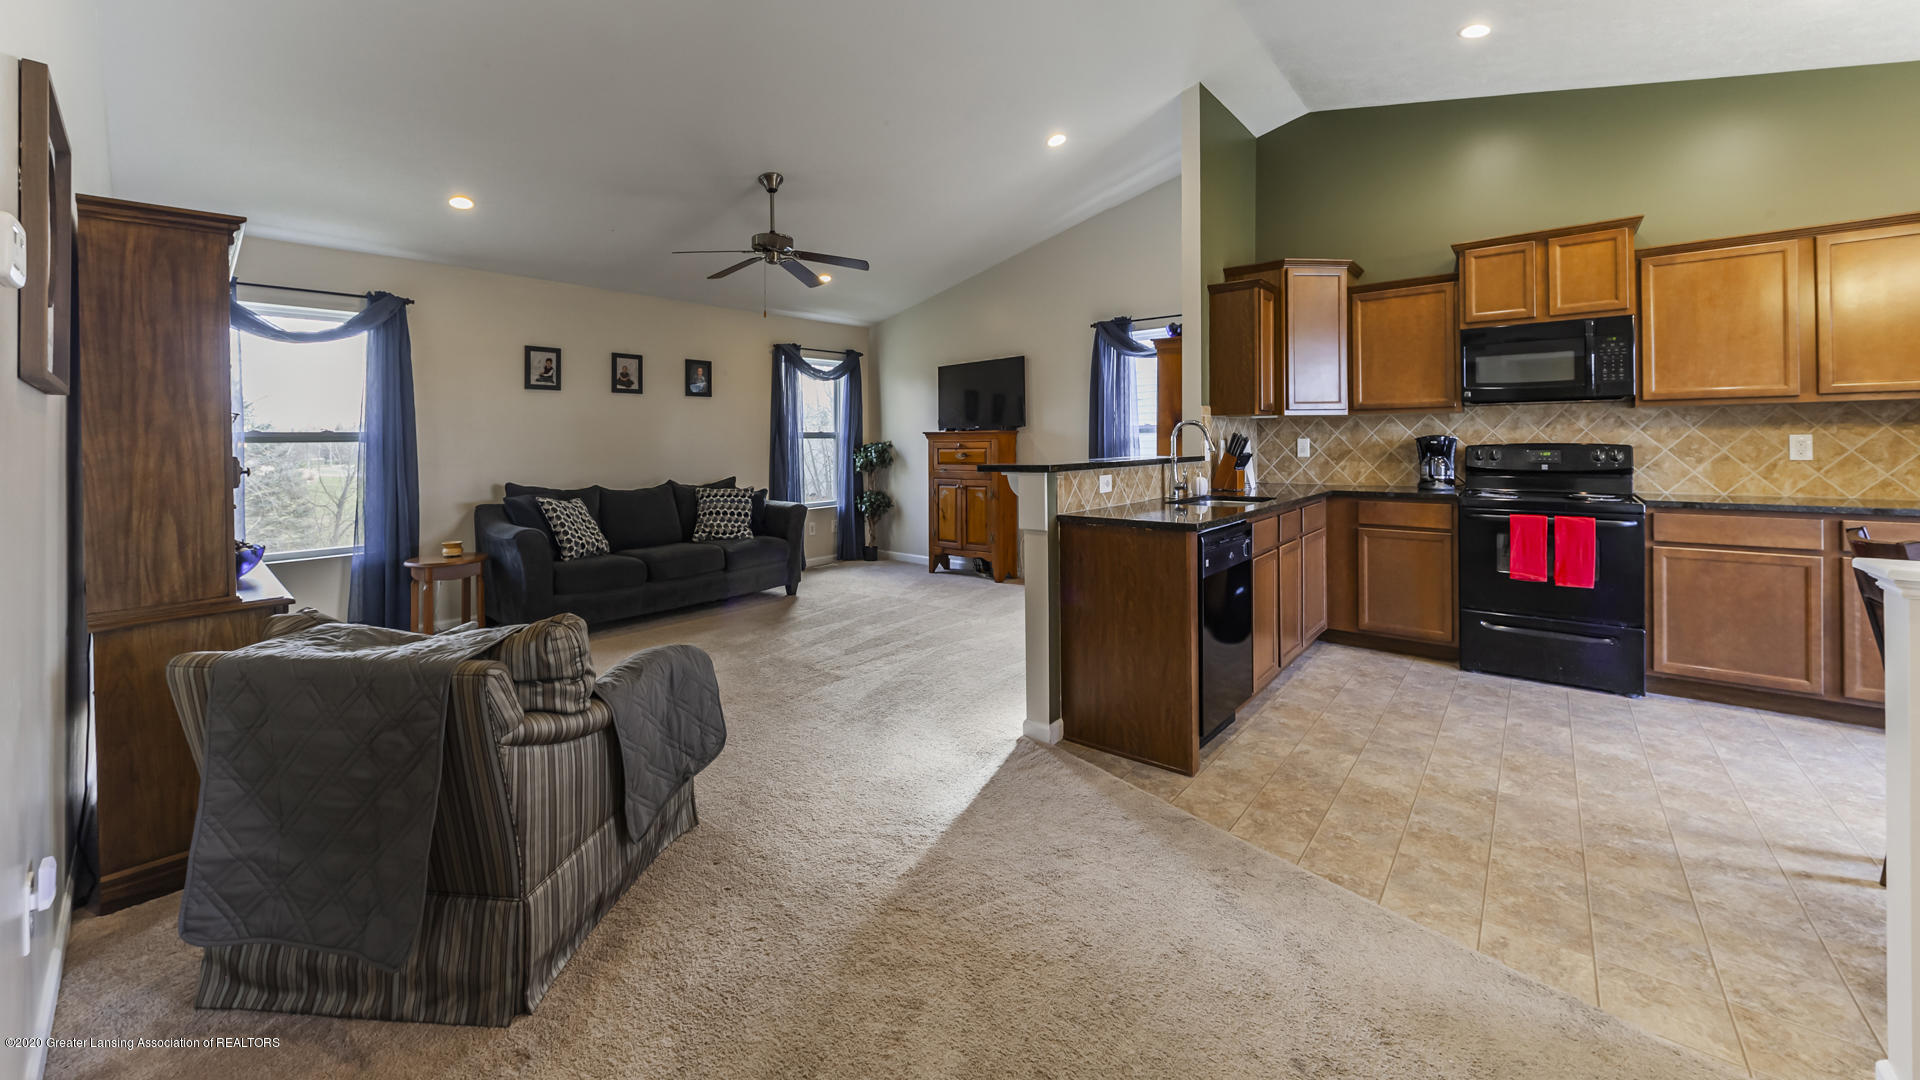 15845 Turnberry St - 15845Turnberry04 - 4